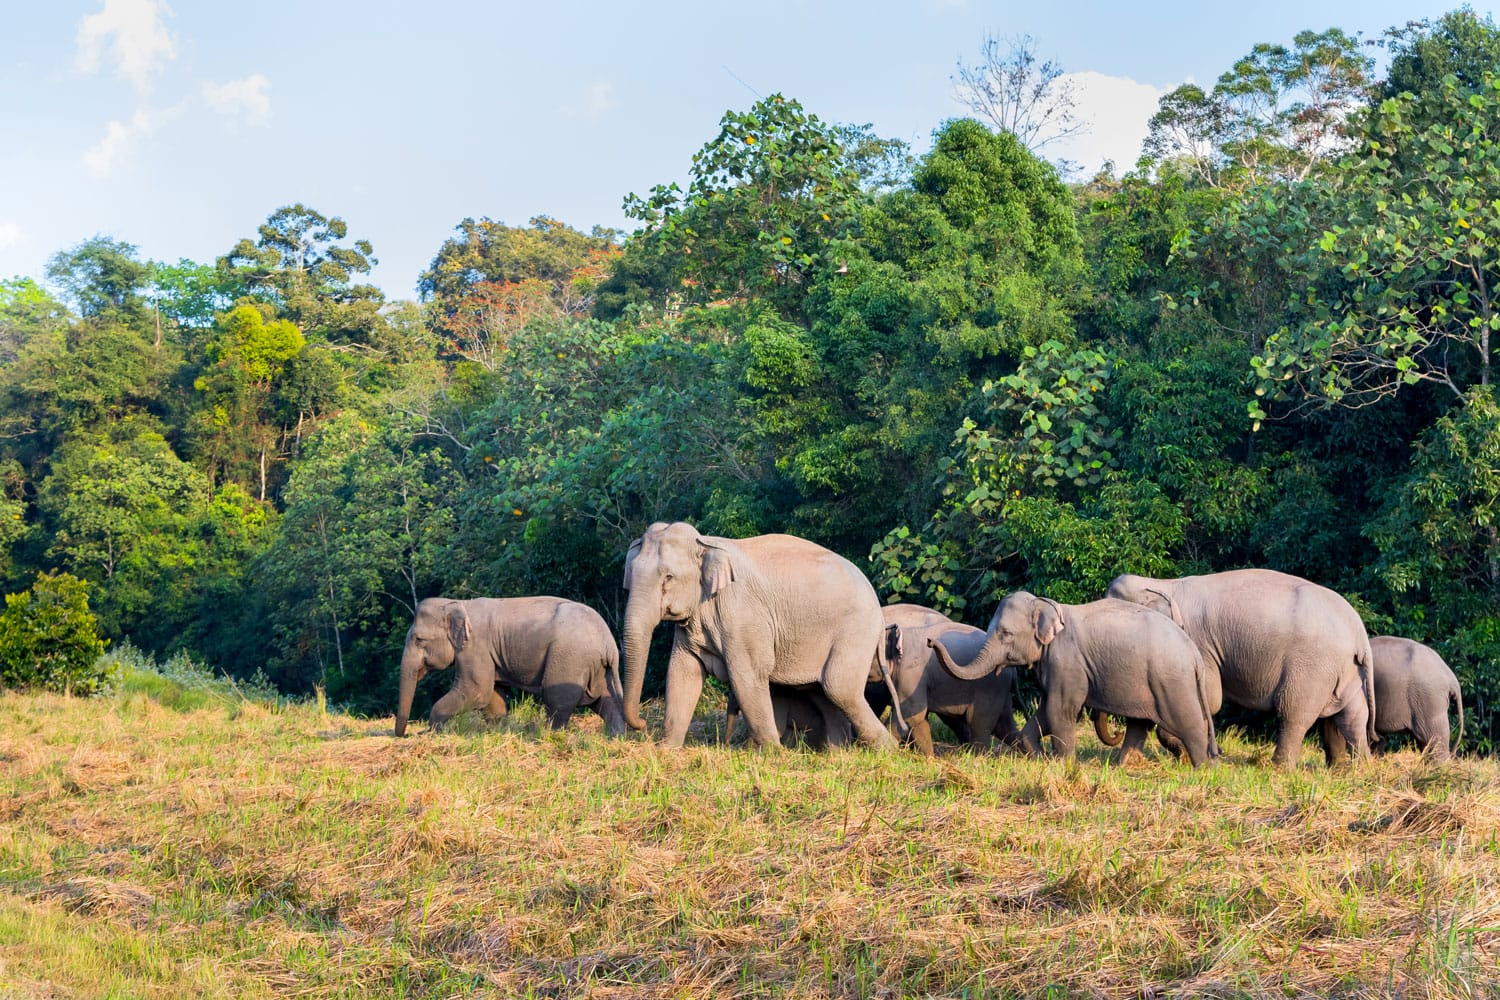 Group of Wild Elephant walking on the field in nature at Khaoyai national park,Thailand